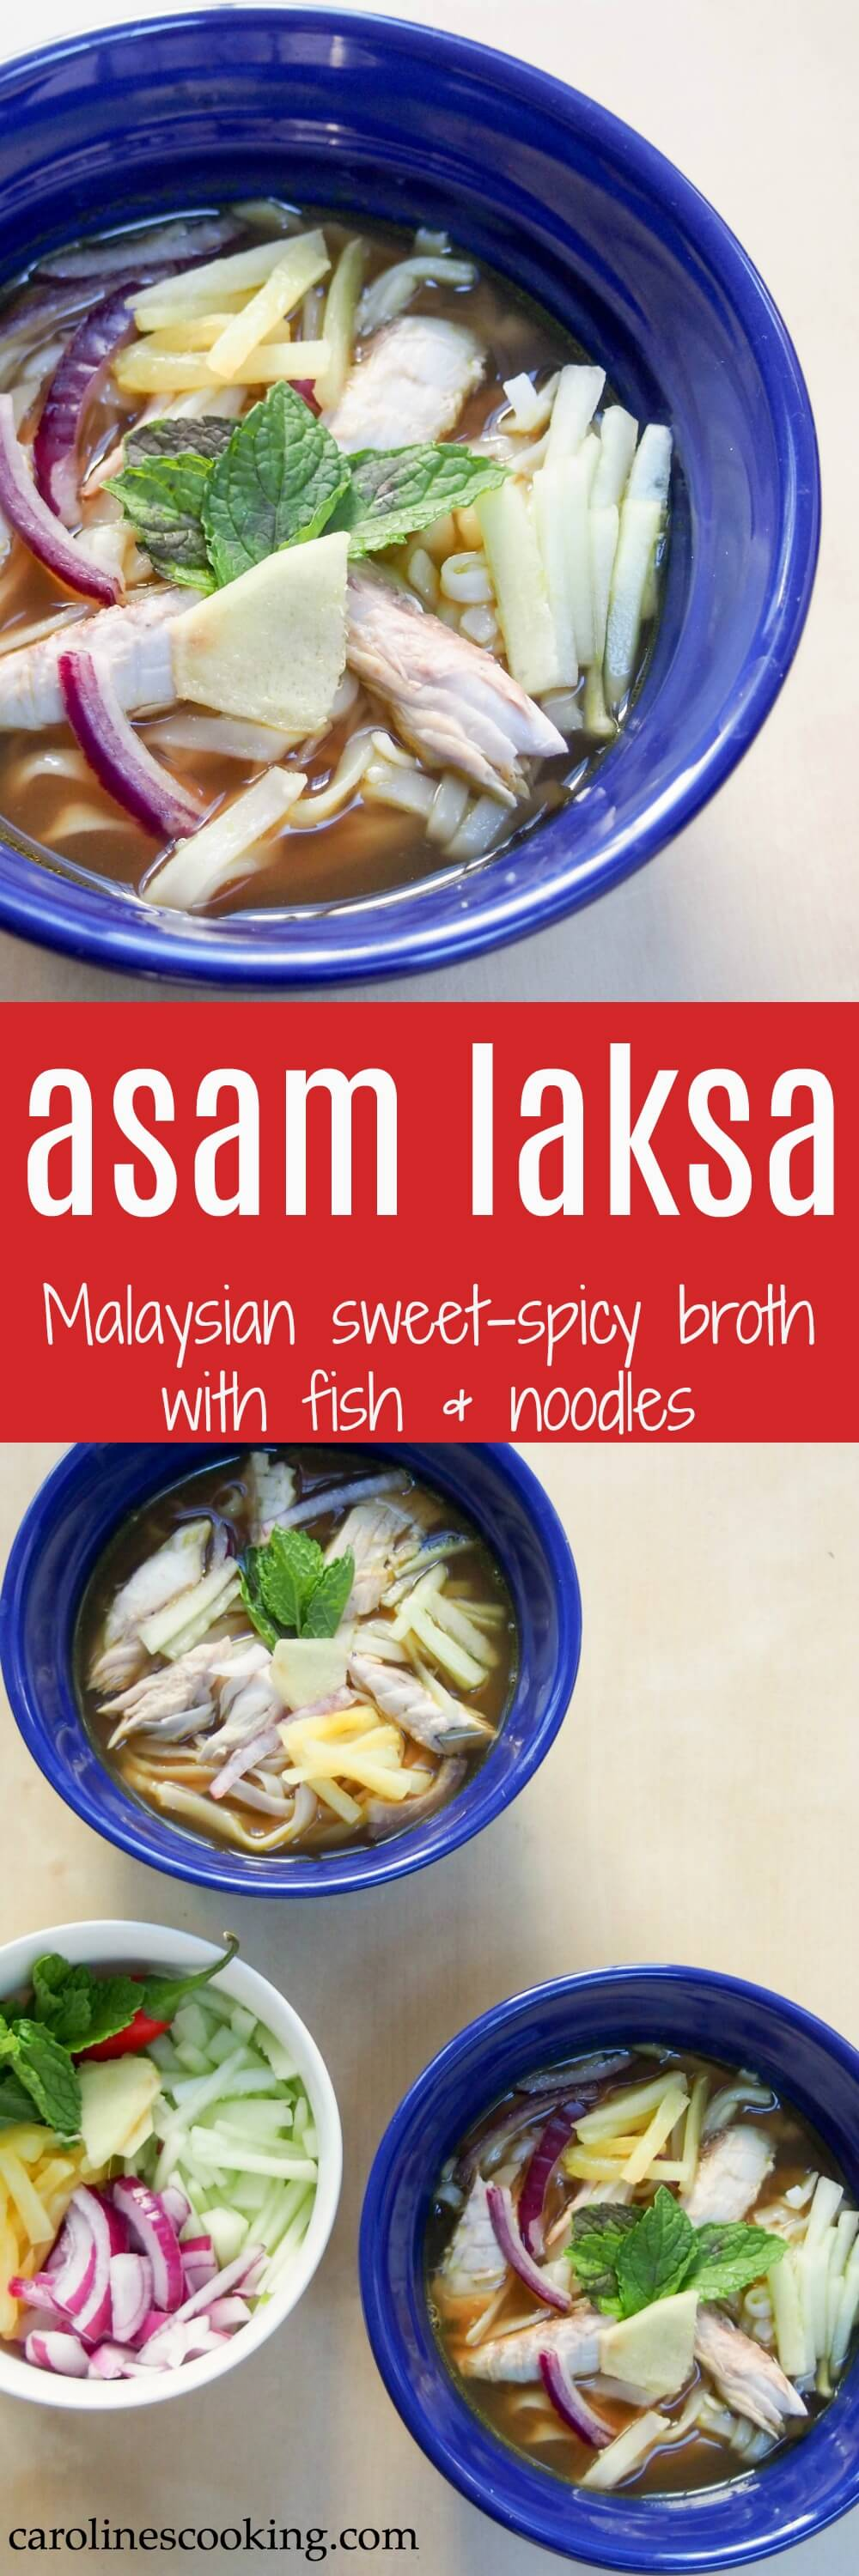 Asam laksa is a deliciously flavorful Asian broth with a fish, tamarind and spicy base, served over rice noodles with cucumber, pineapple and mint garnish. A delicious dinner!